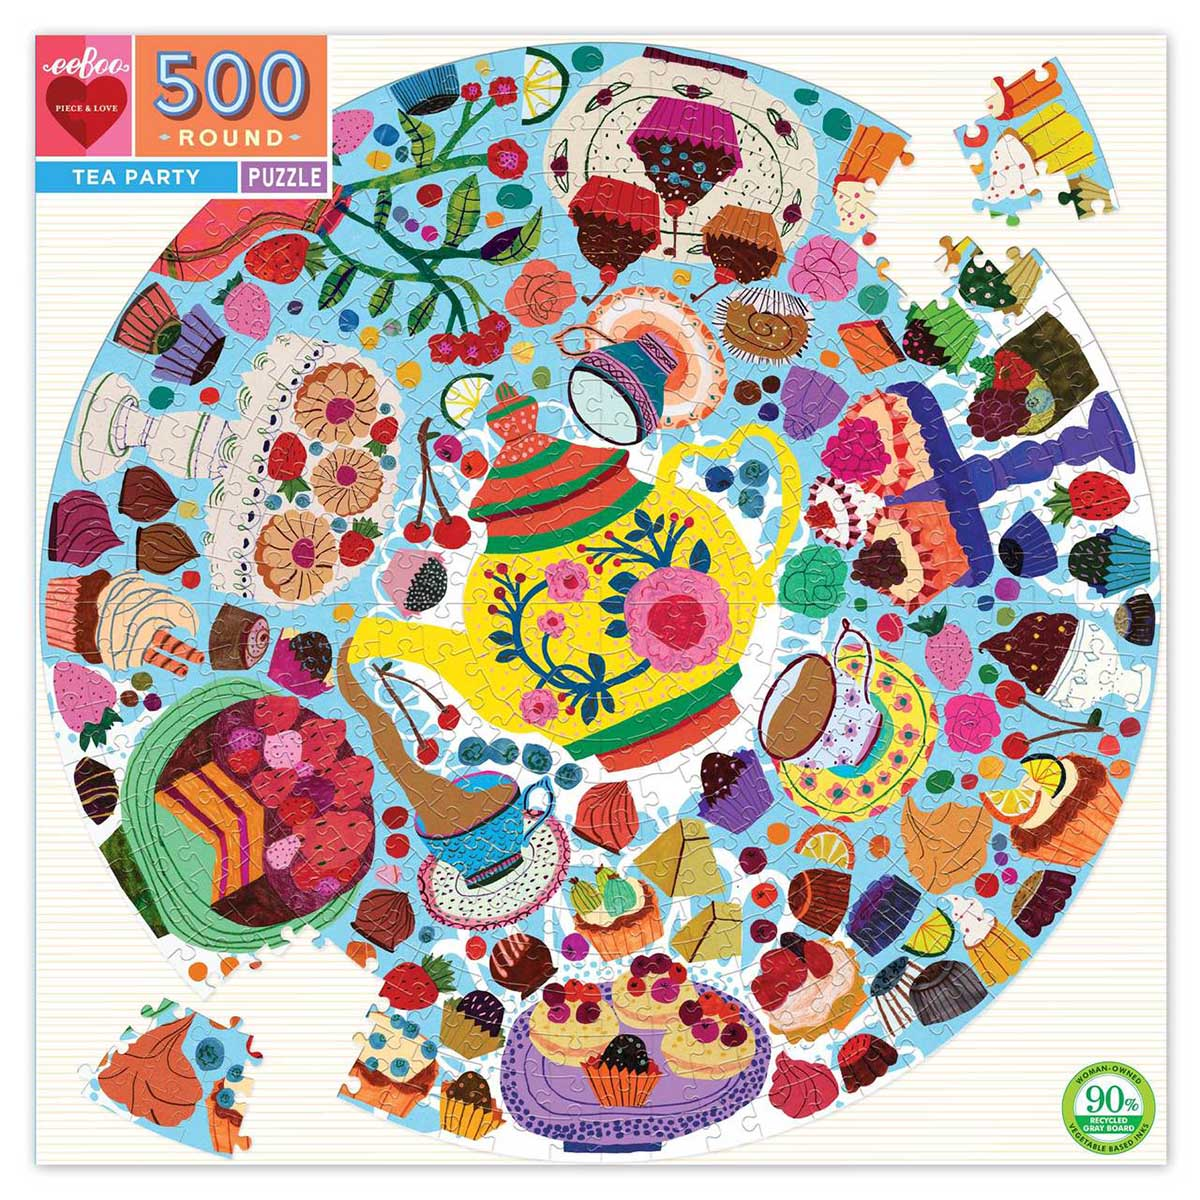 Tea Party Food and Drink Jigsaw Puzzle